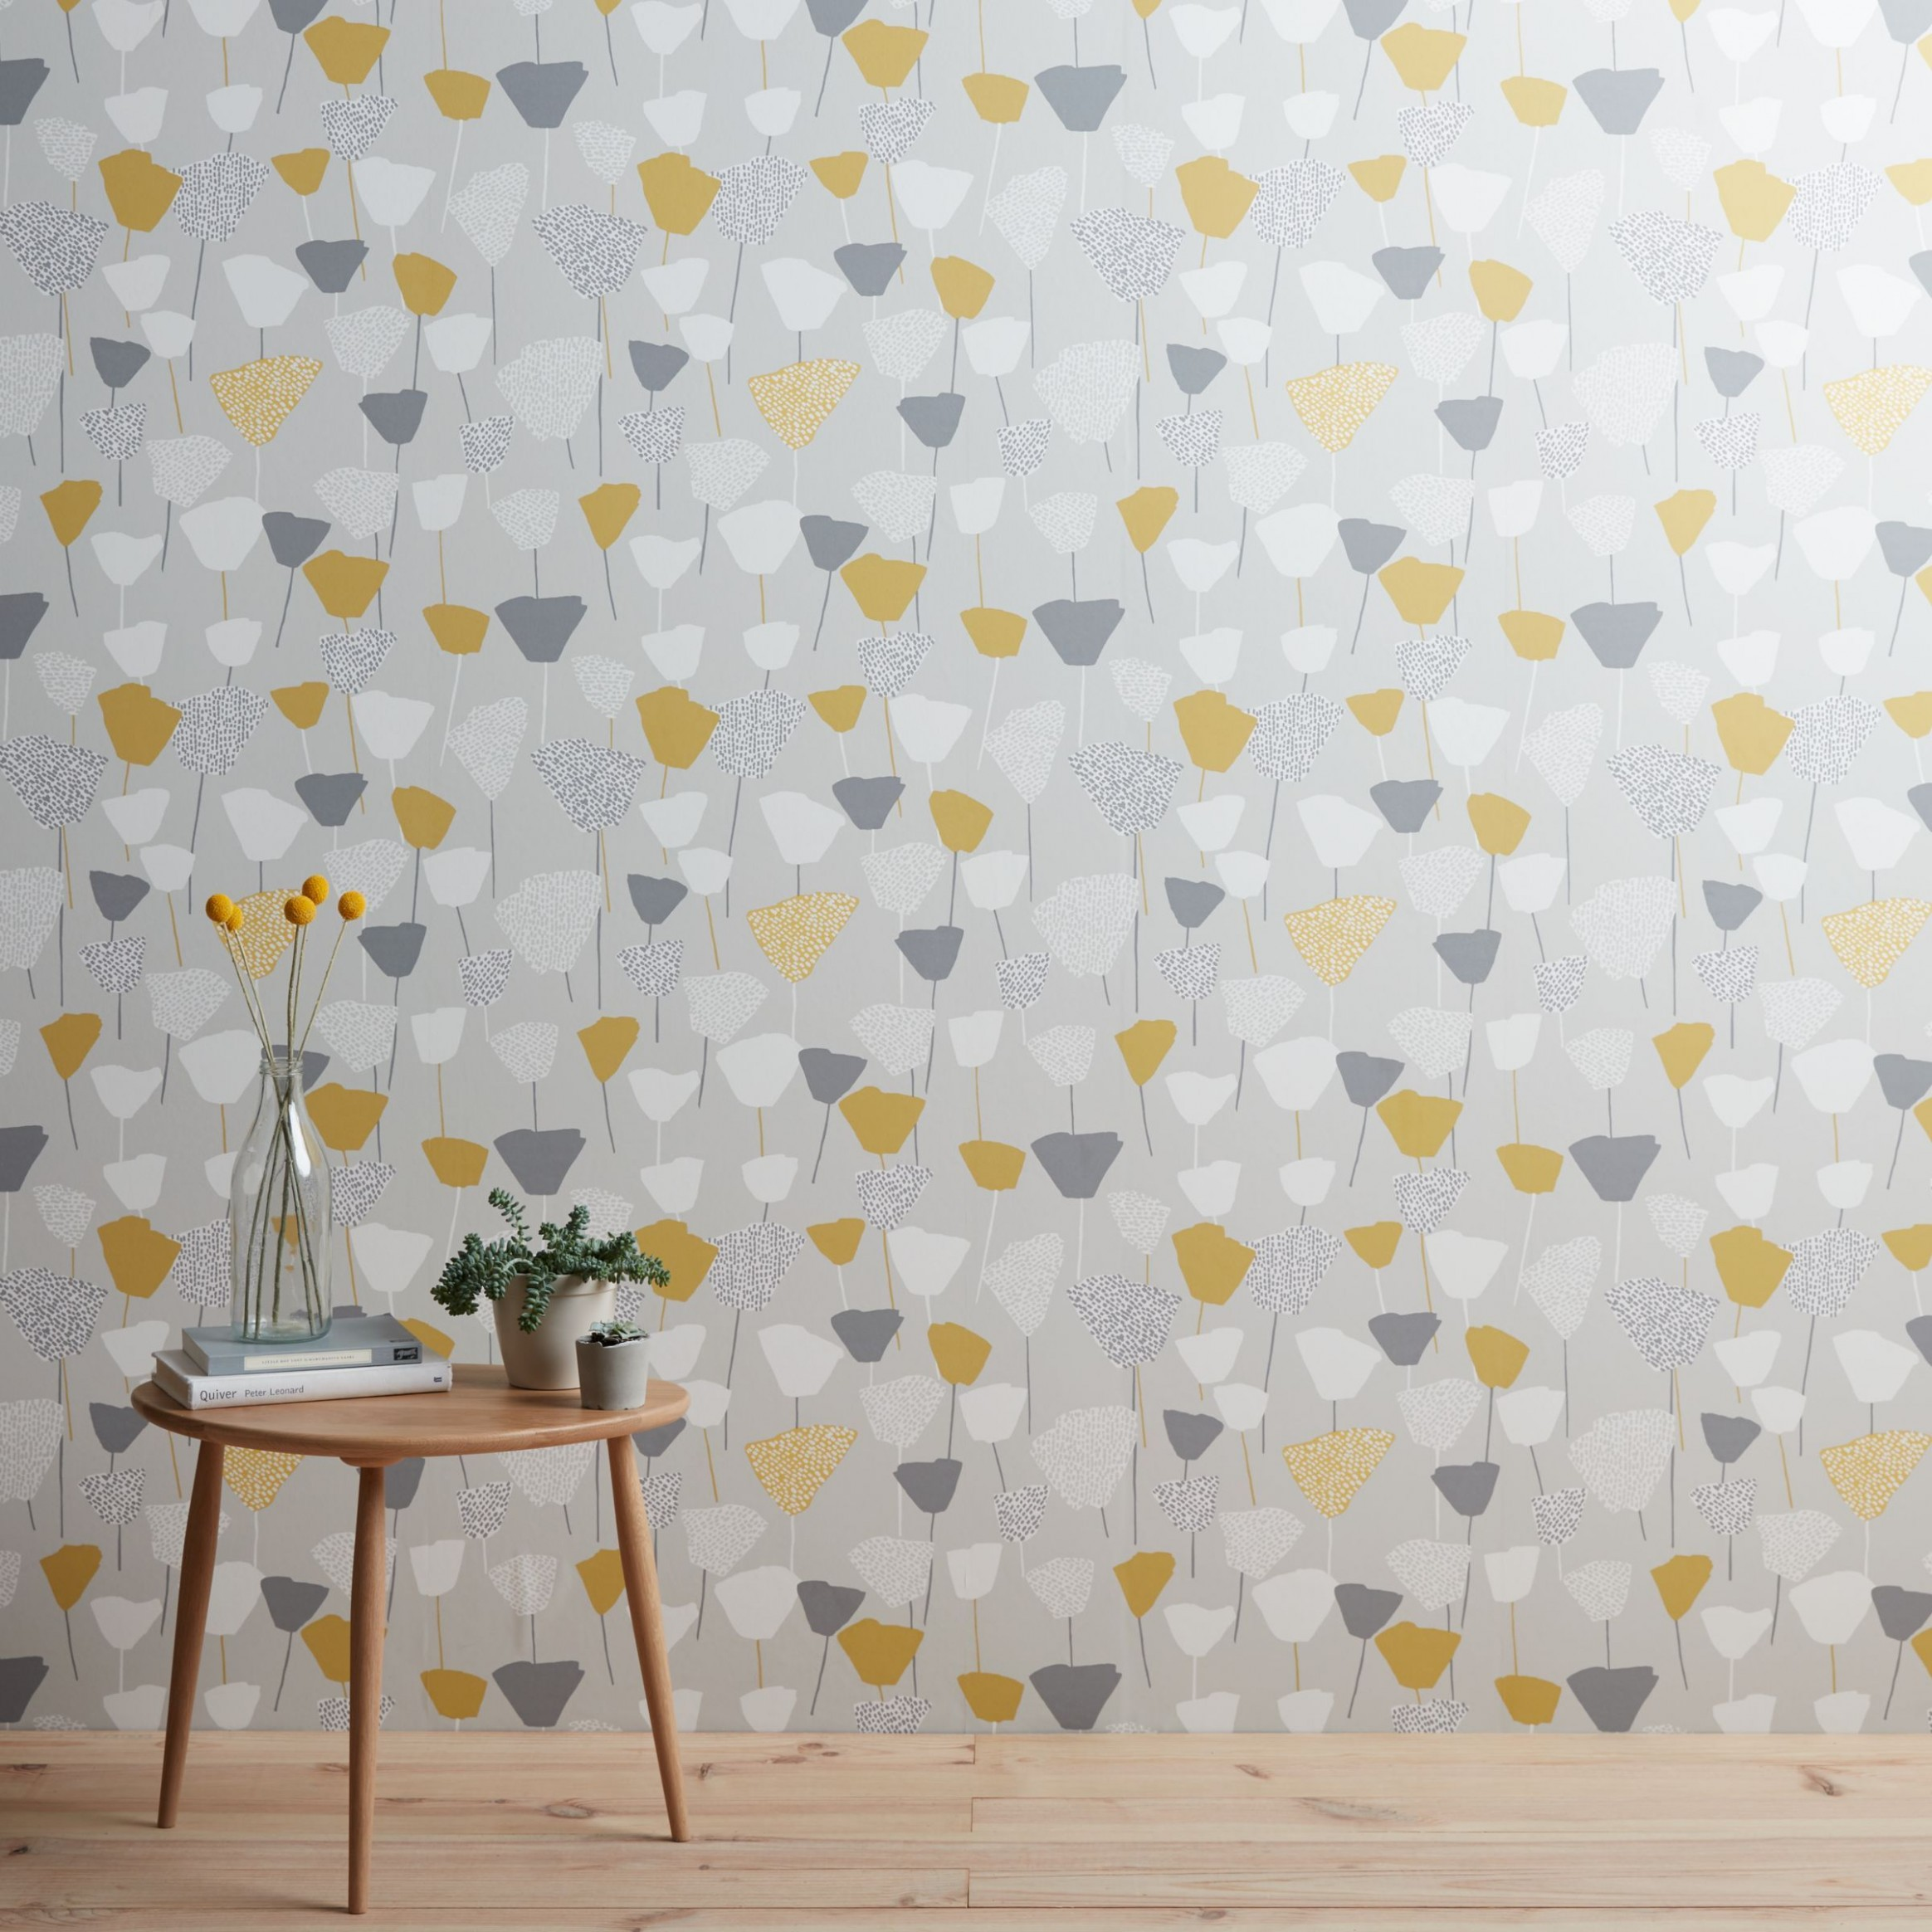 John Lewis & Partners Elin Wallpaper, Mineral in 8  Dining  - Bedroom Wallpaper Ideas John Lewis